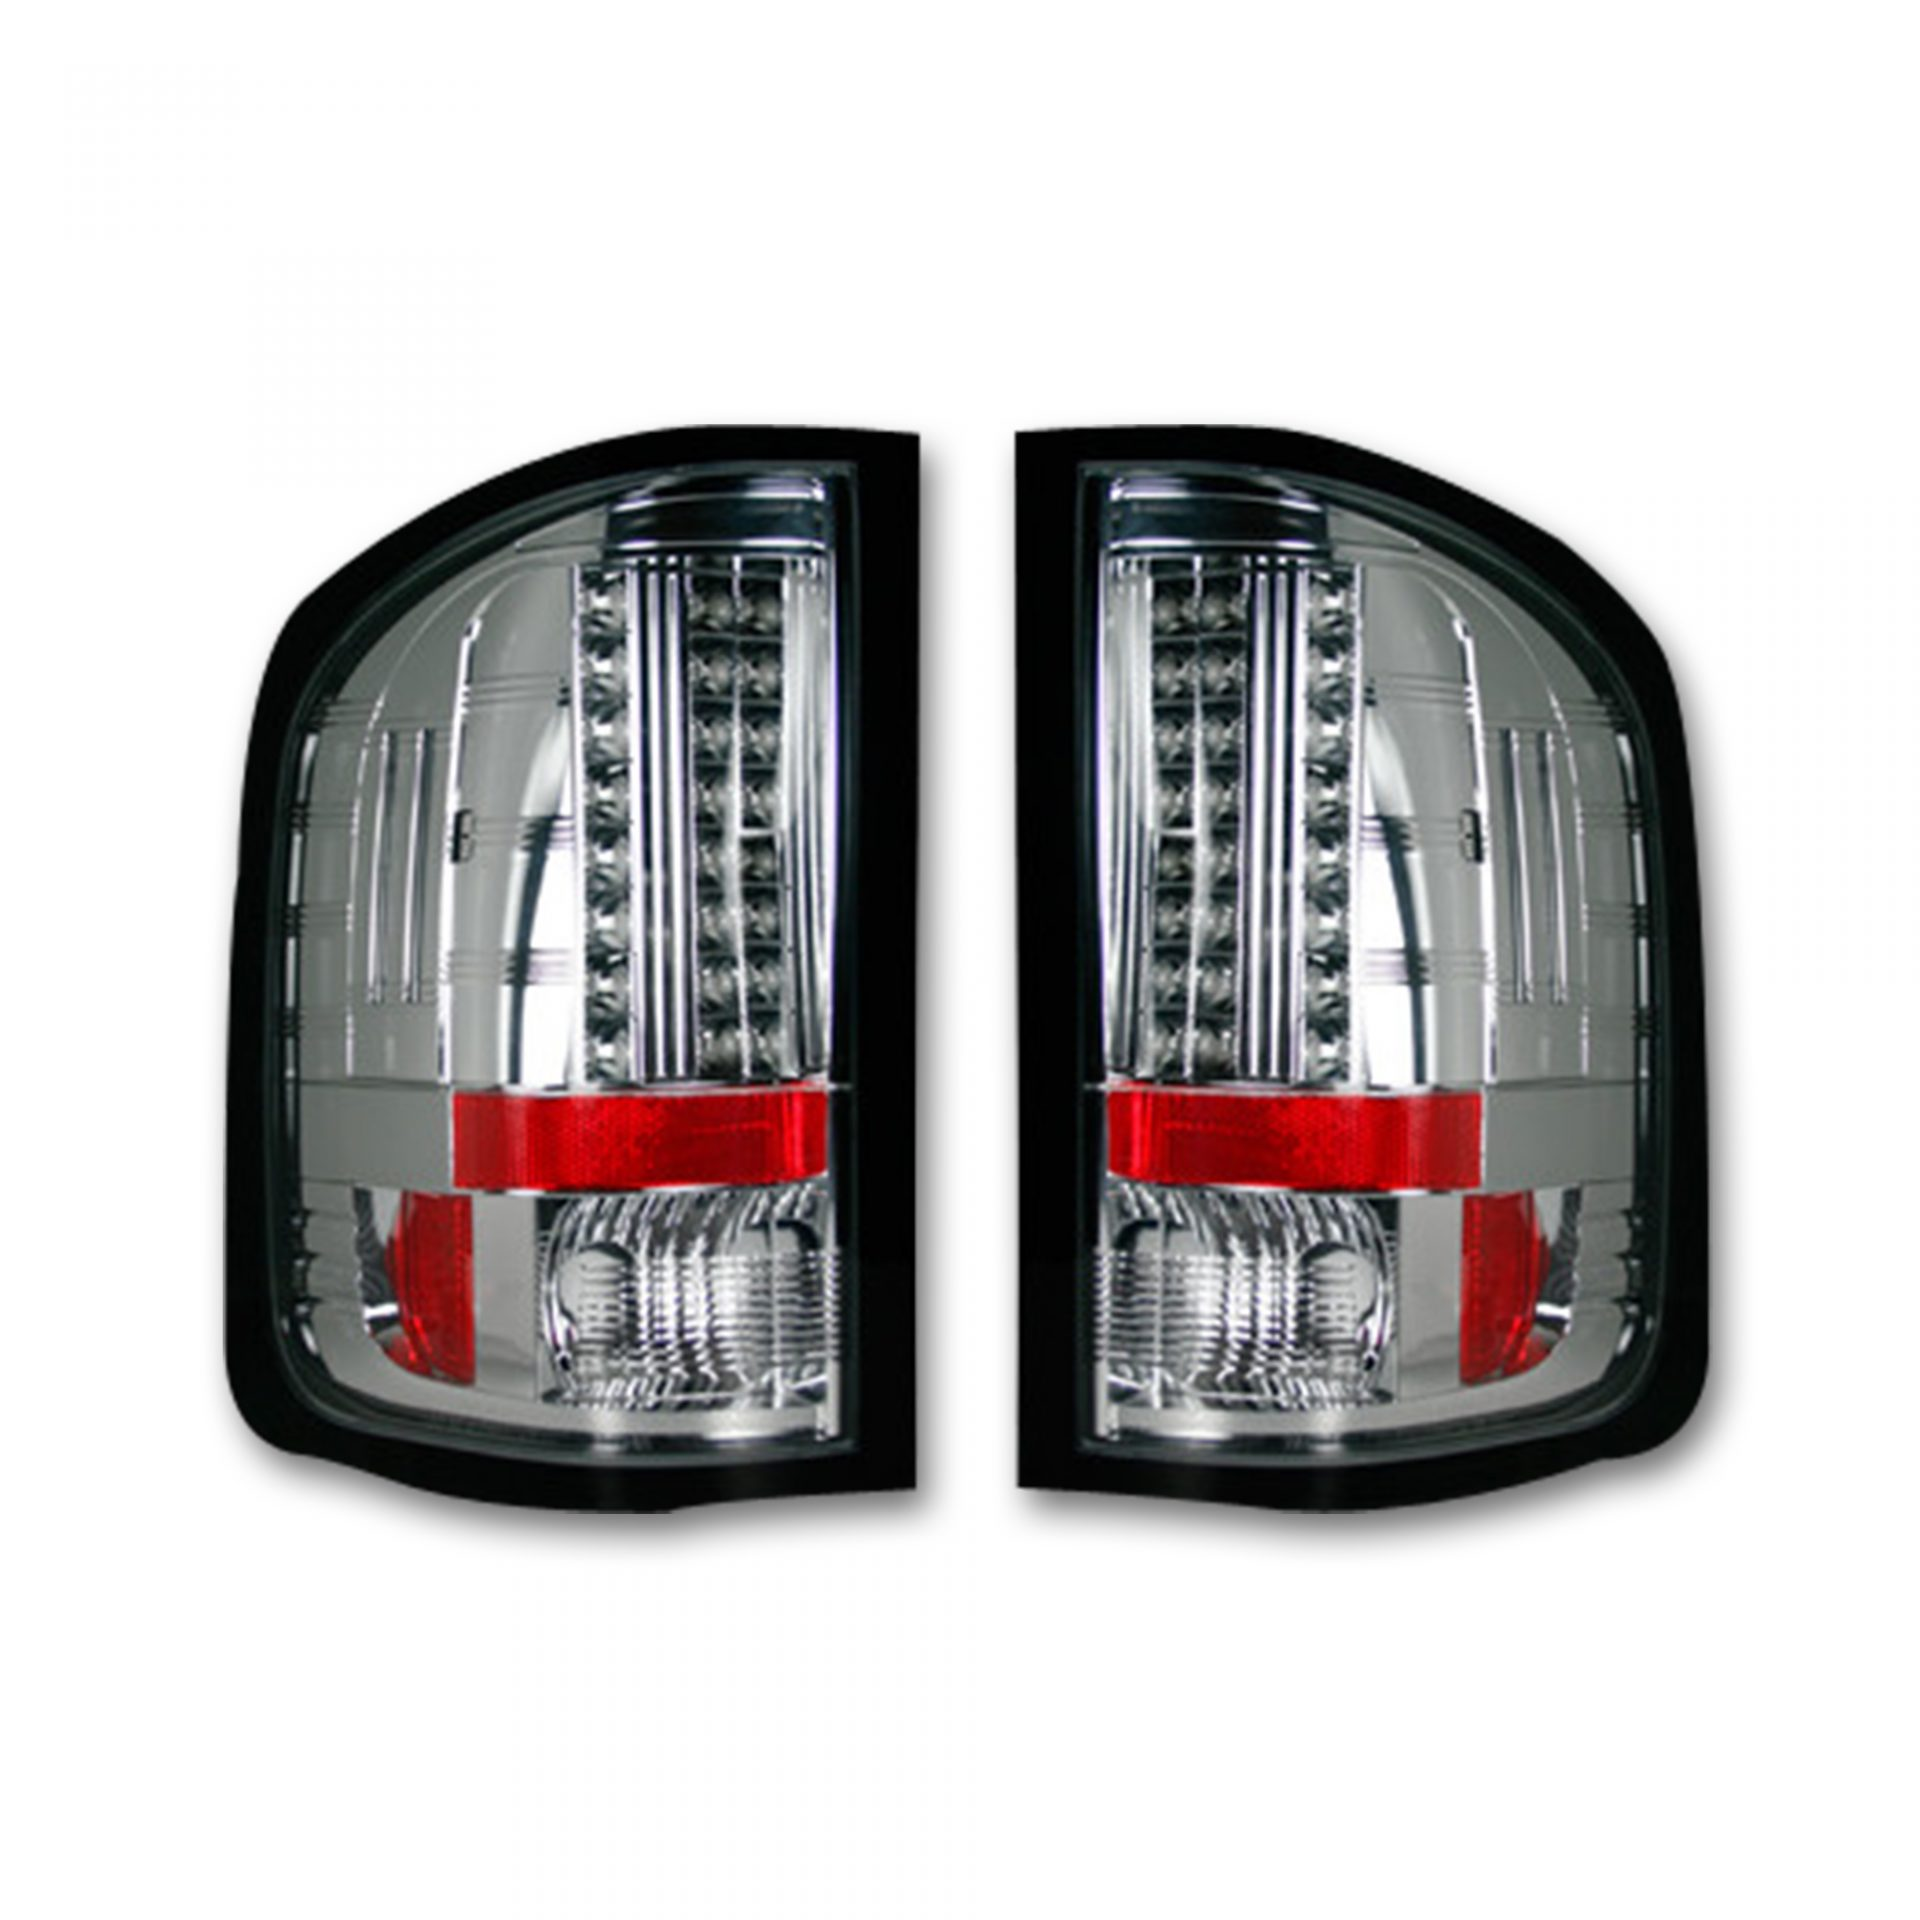 Chevy GMC LED Taillights Truck & Car Parts CL